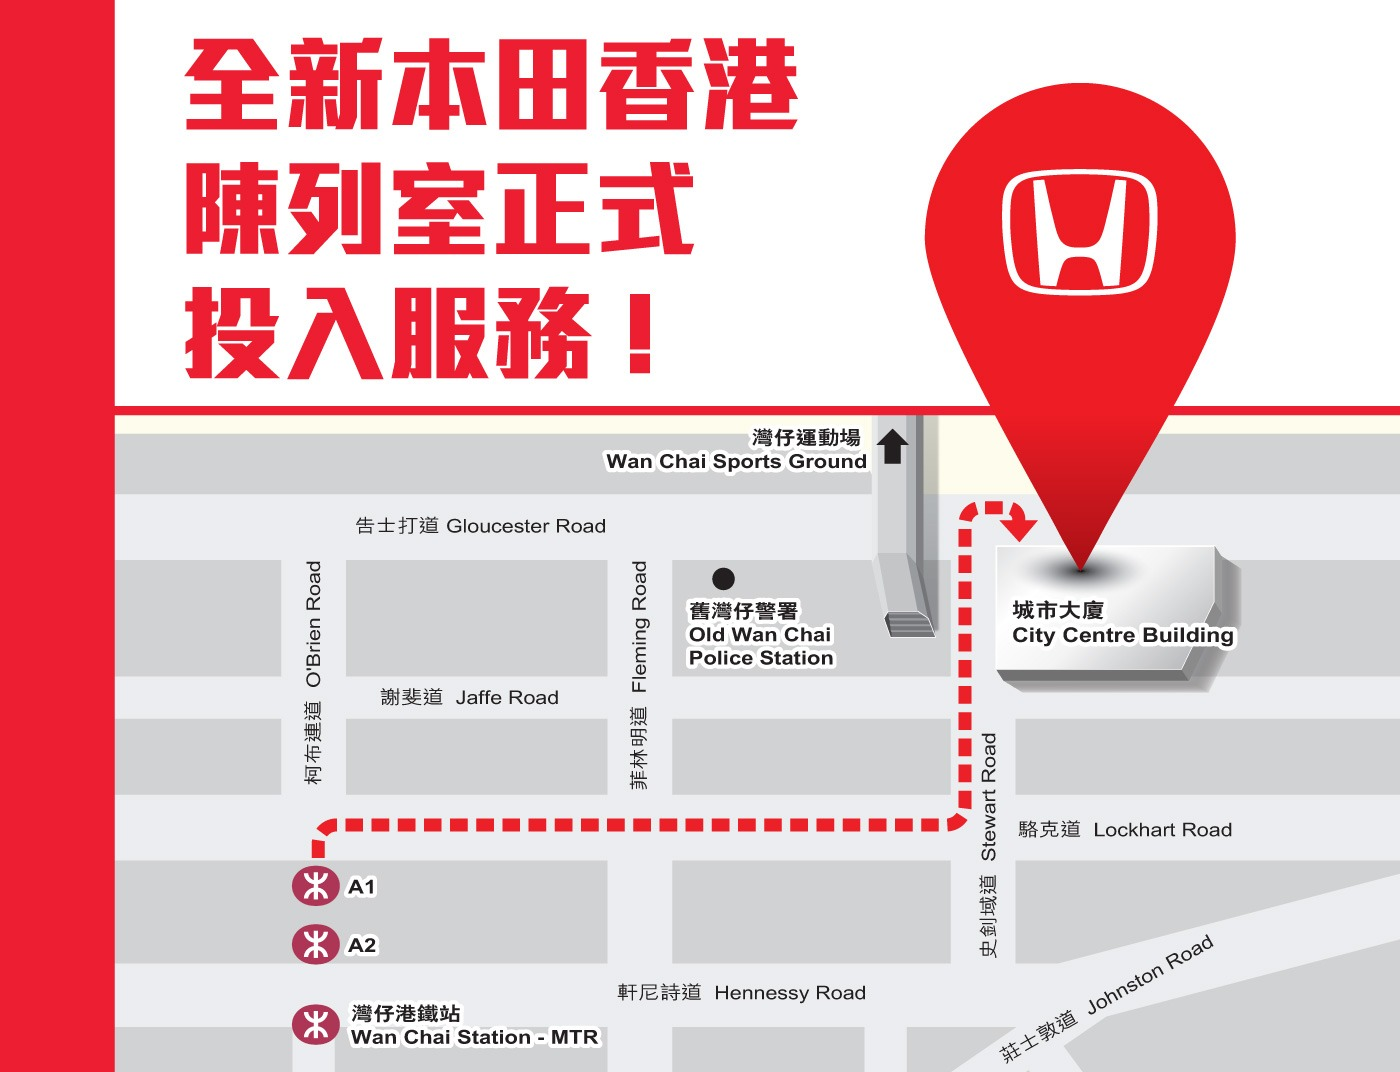 Honda website new HK showroom